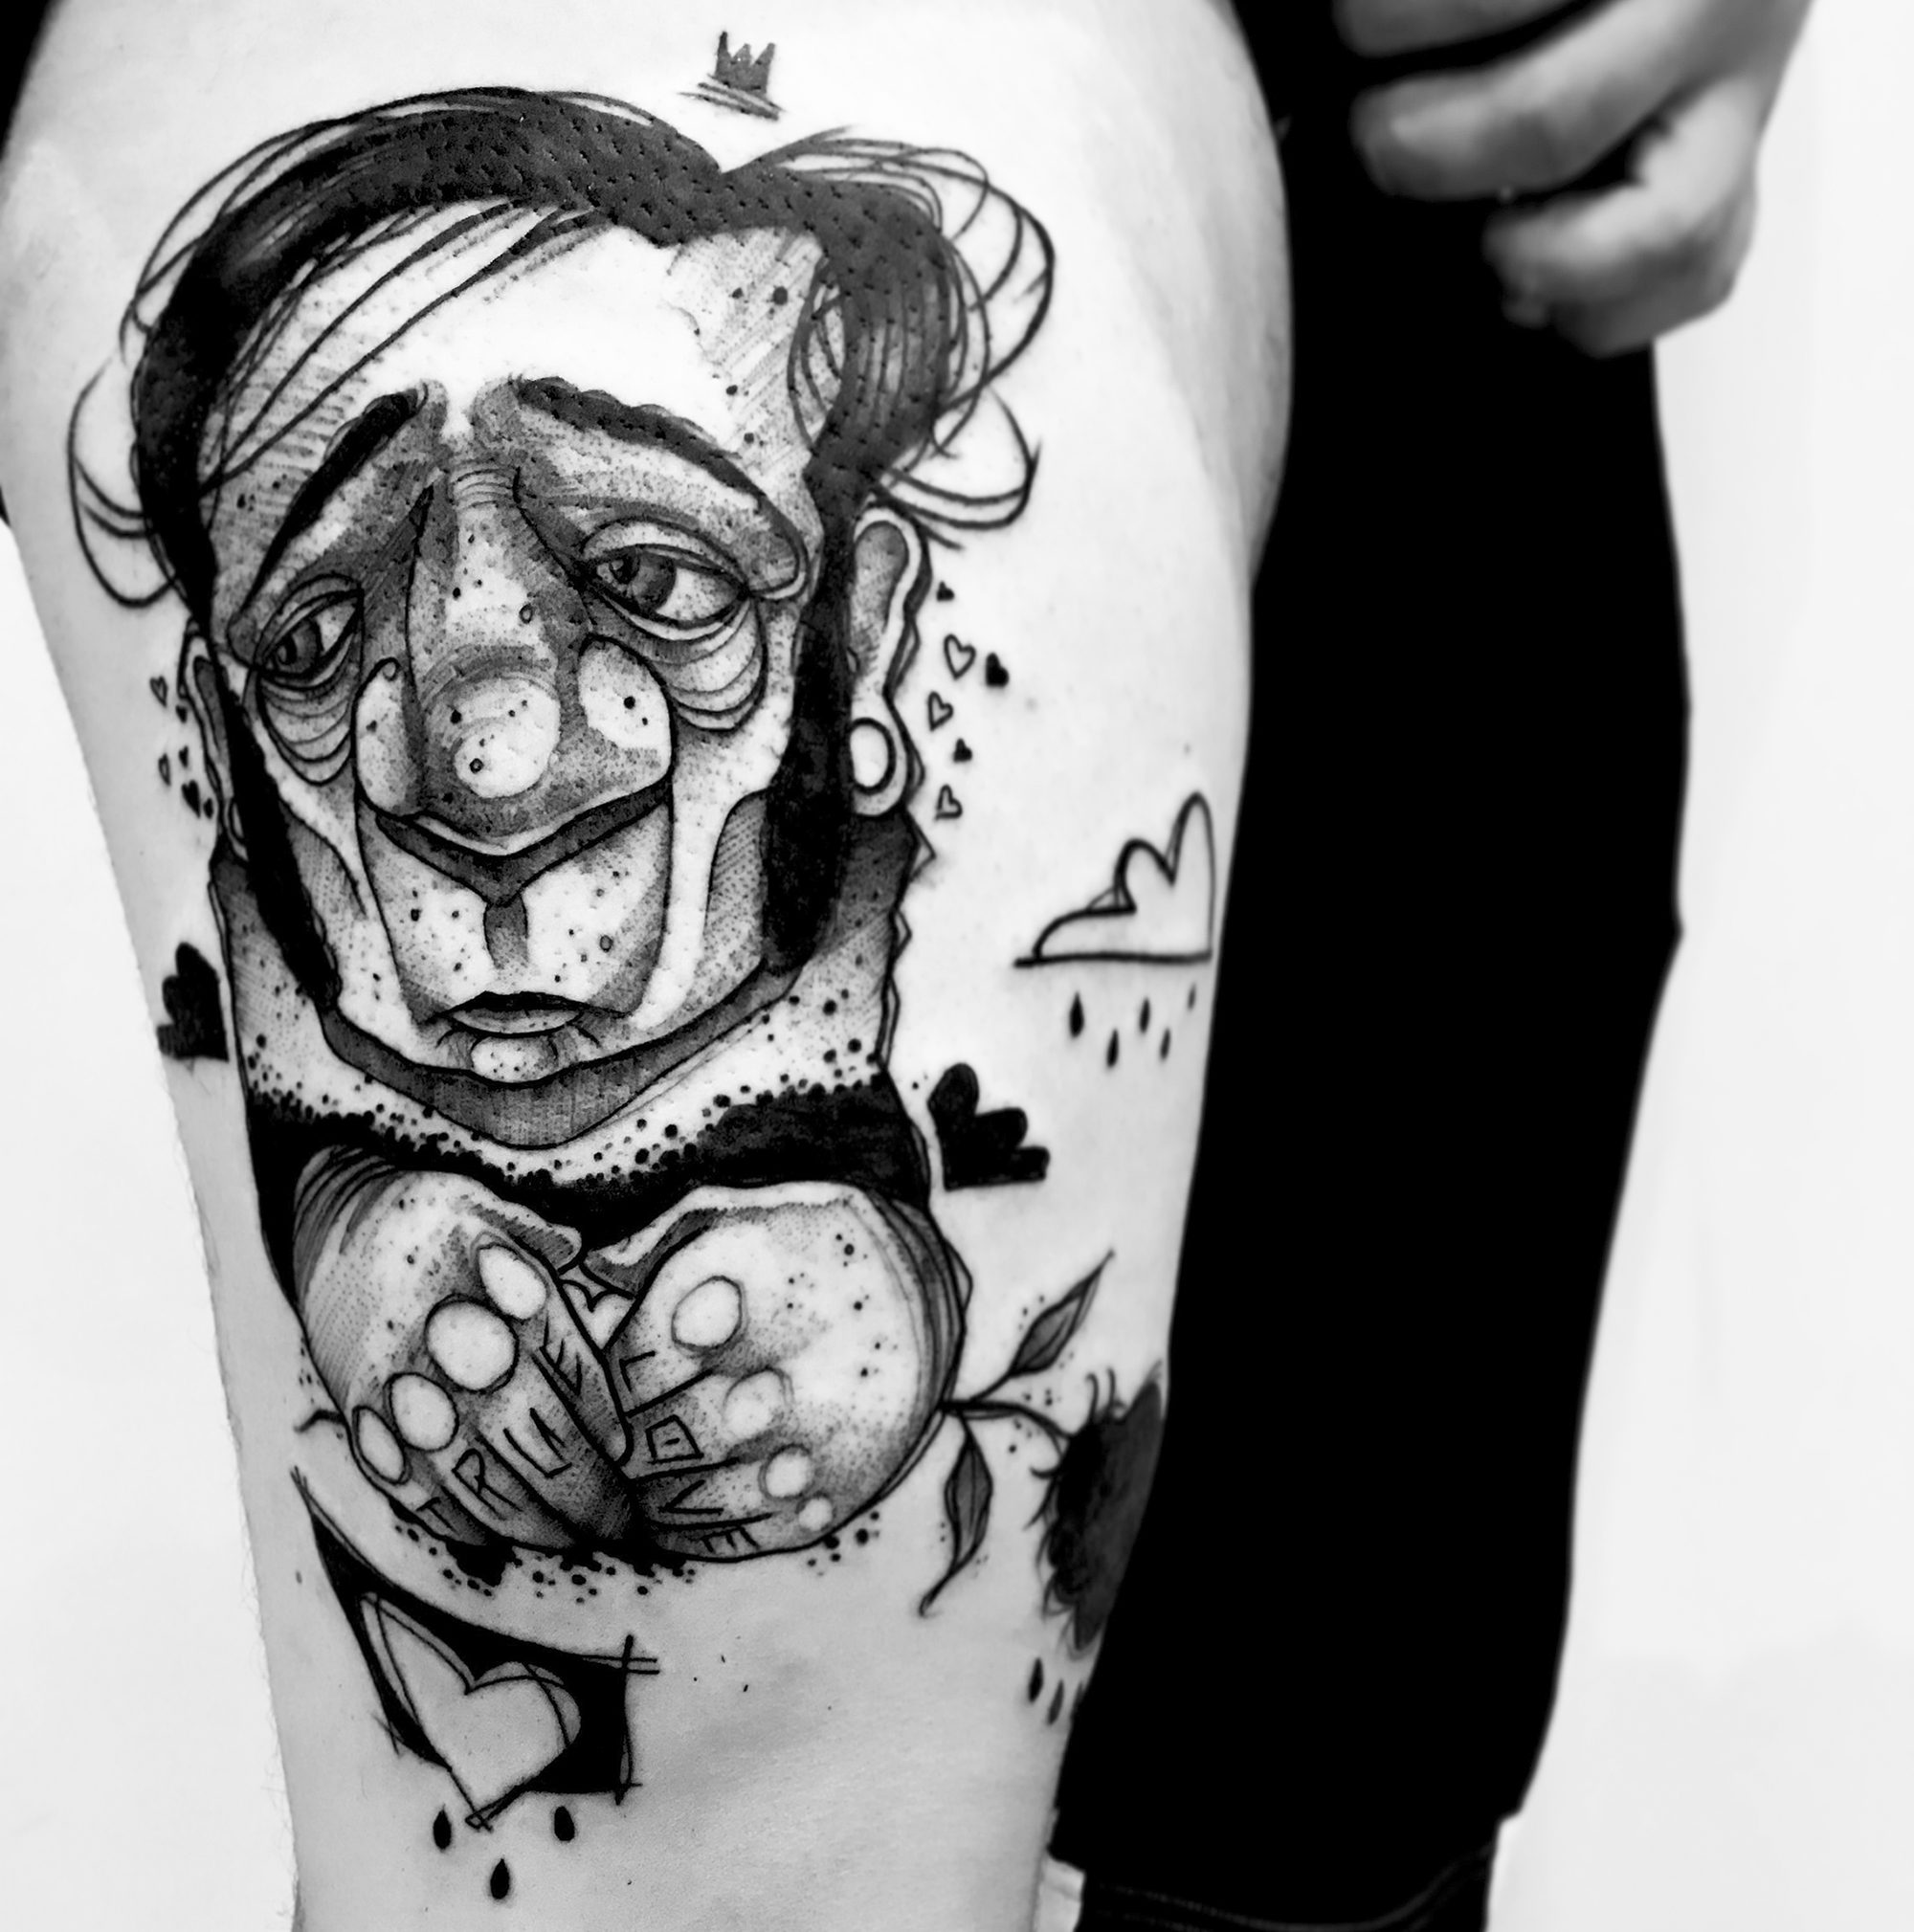 From Graffiti to Tattooing: The Body Art of Ninne Oat